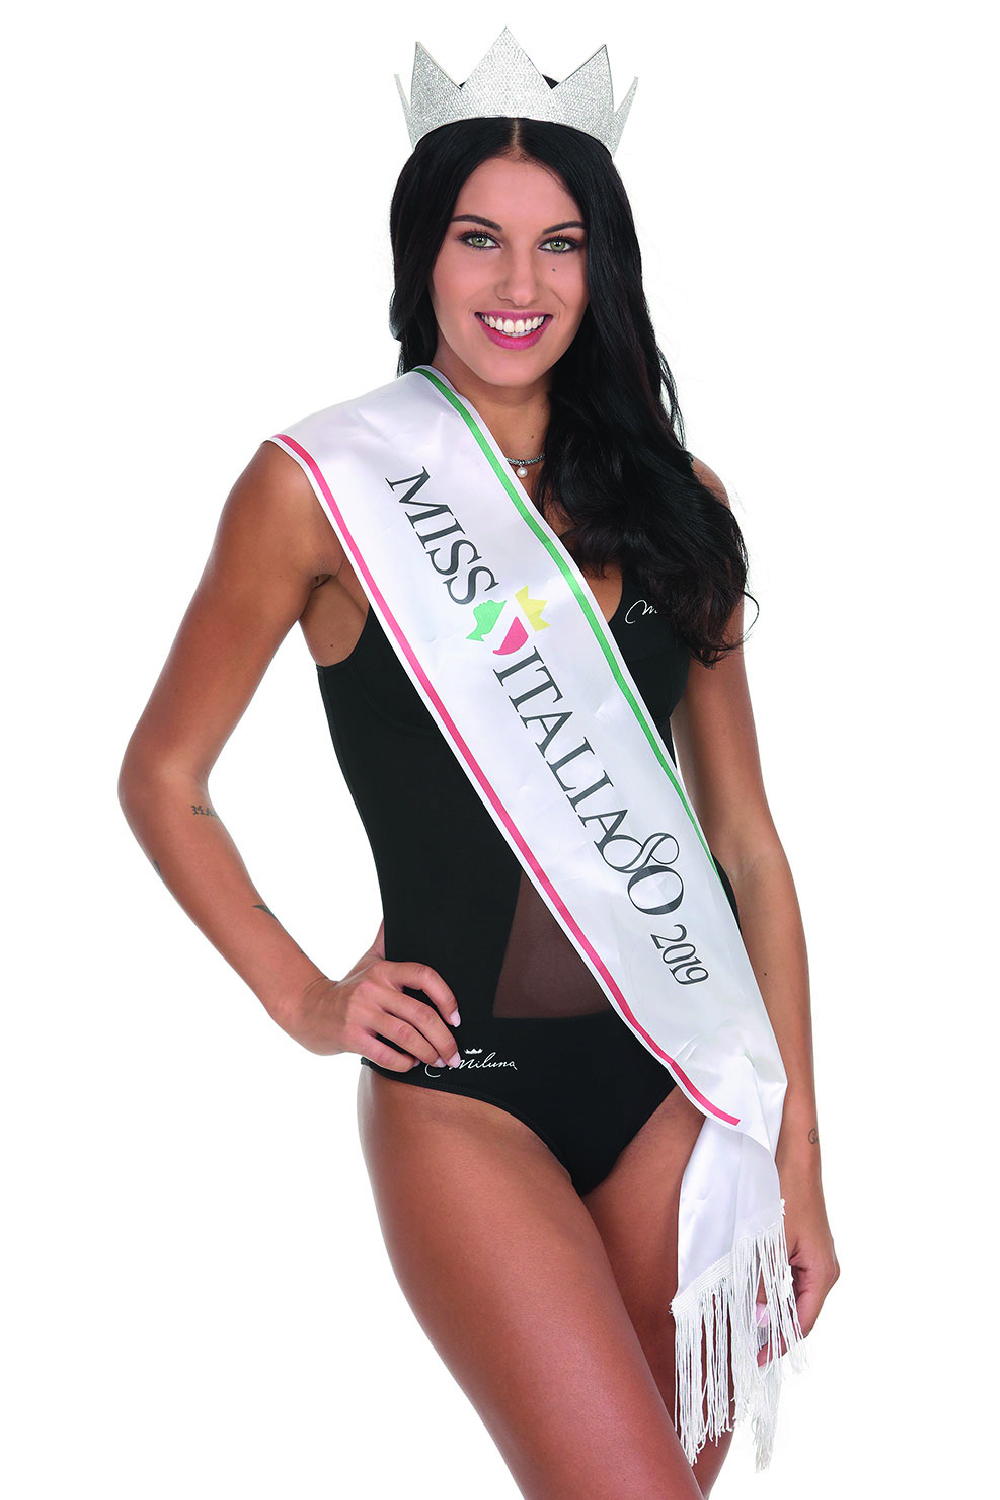 carolina-stramare-miss-italia-2019-100